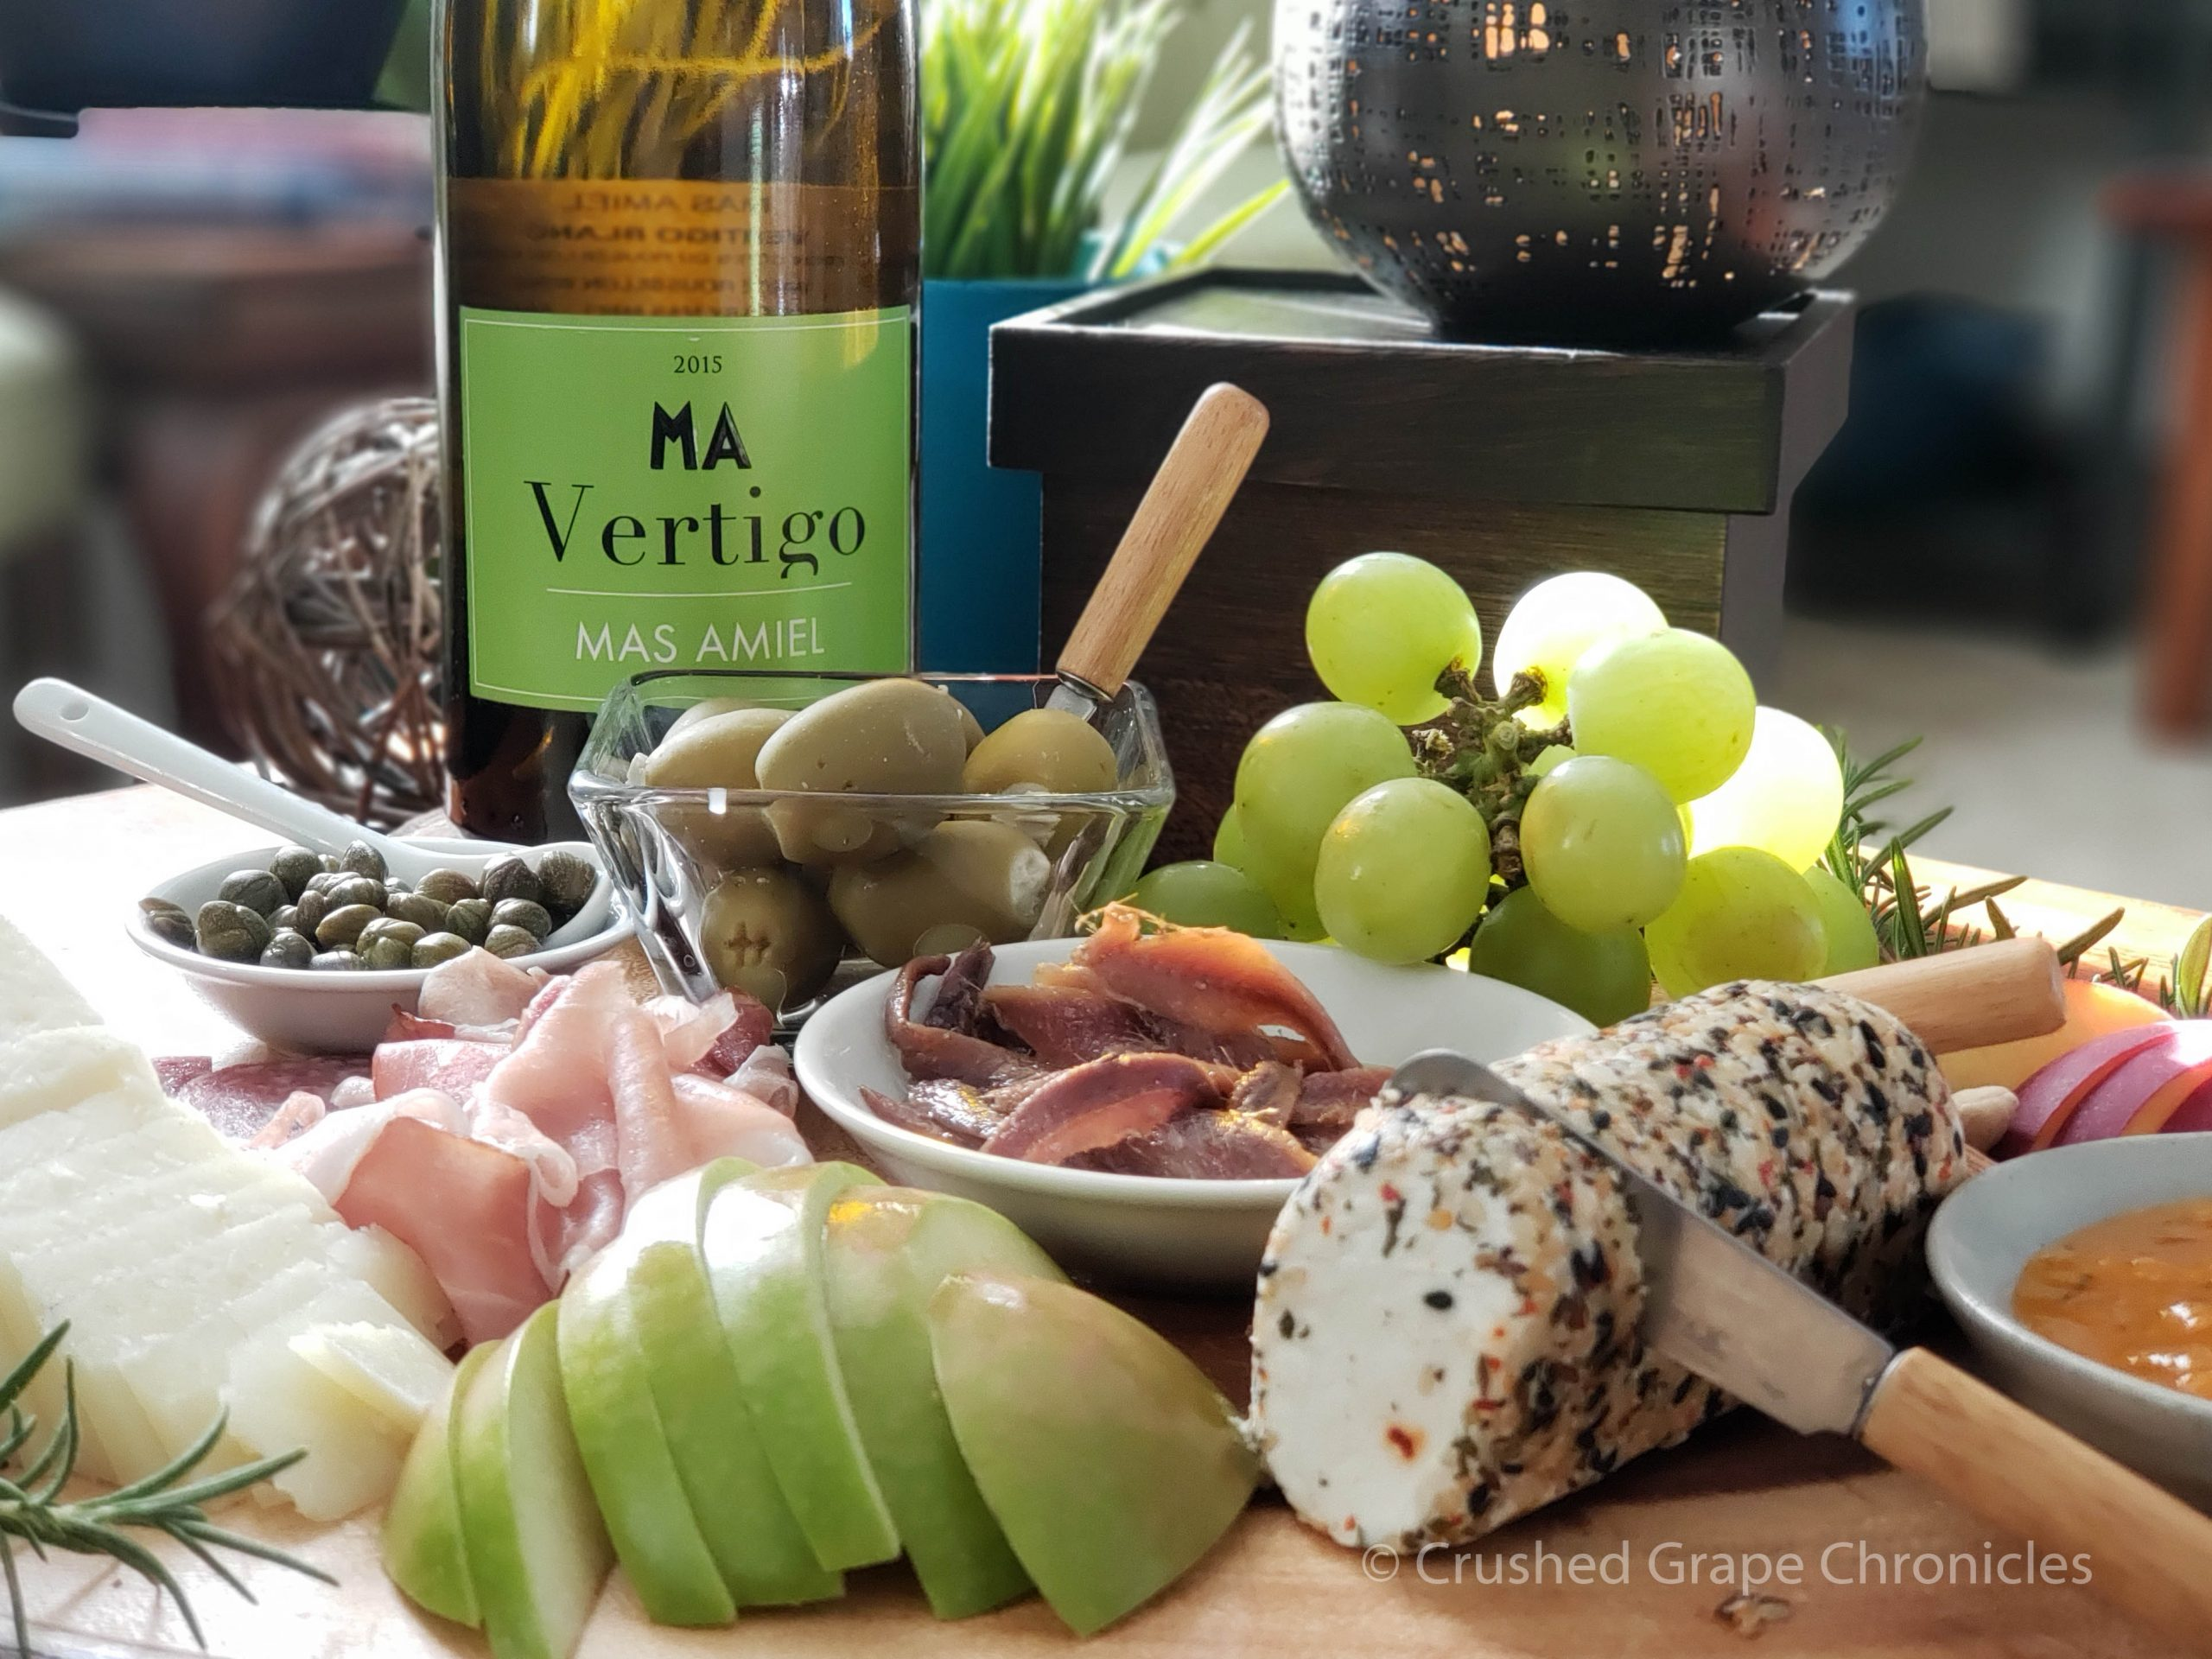 Mas Amiel 2015 Vertigo with a platter of olives, capers, apple, manchego, goat cheese with herbs and spices, nectarine, grapes, and anchovies.